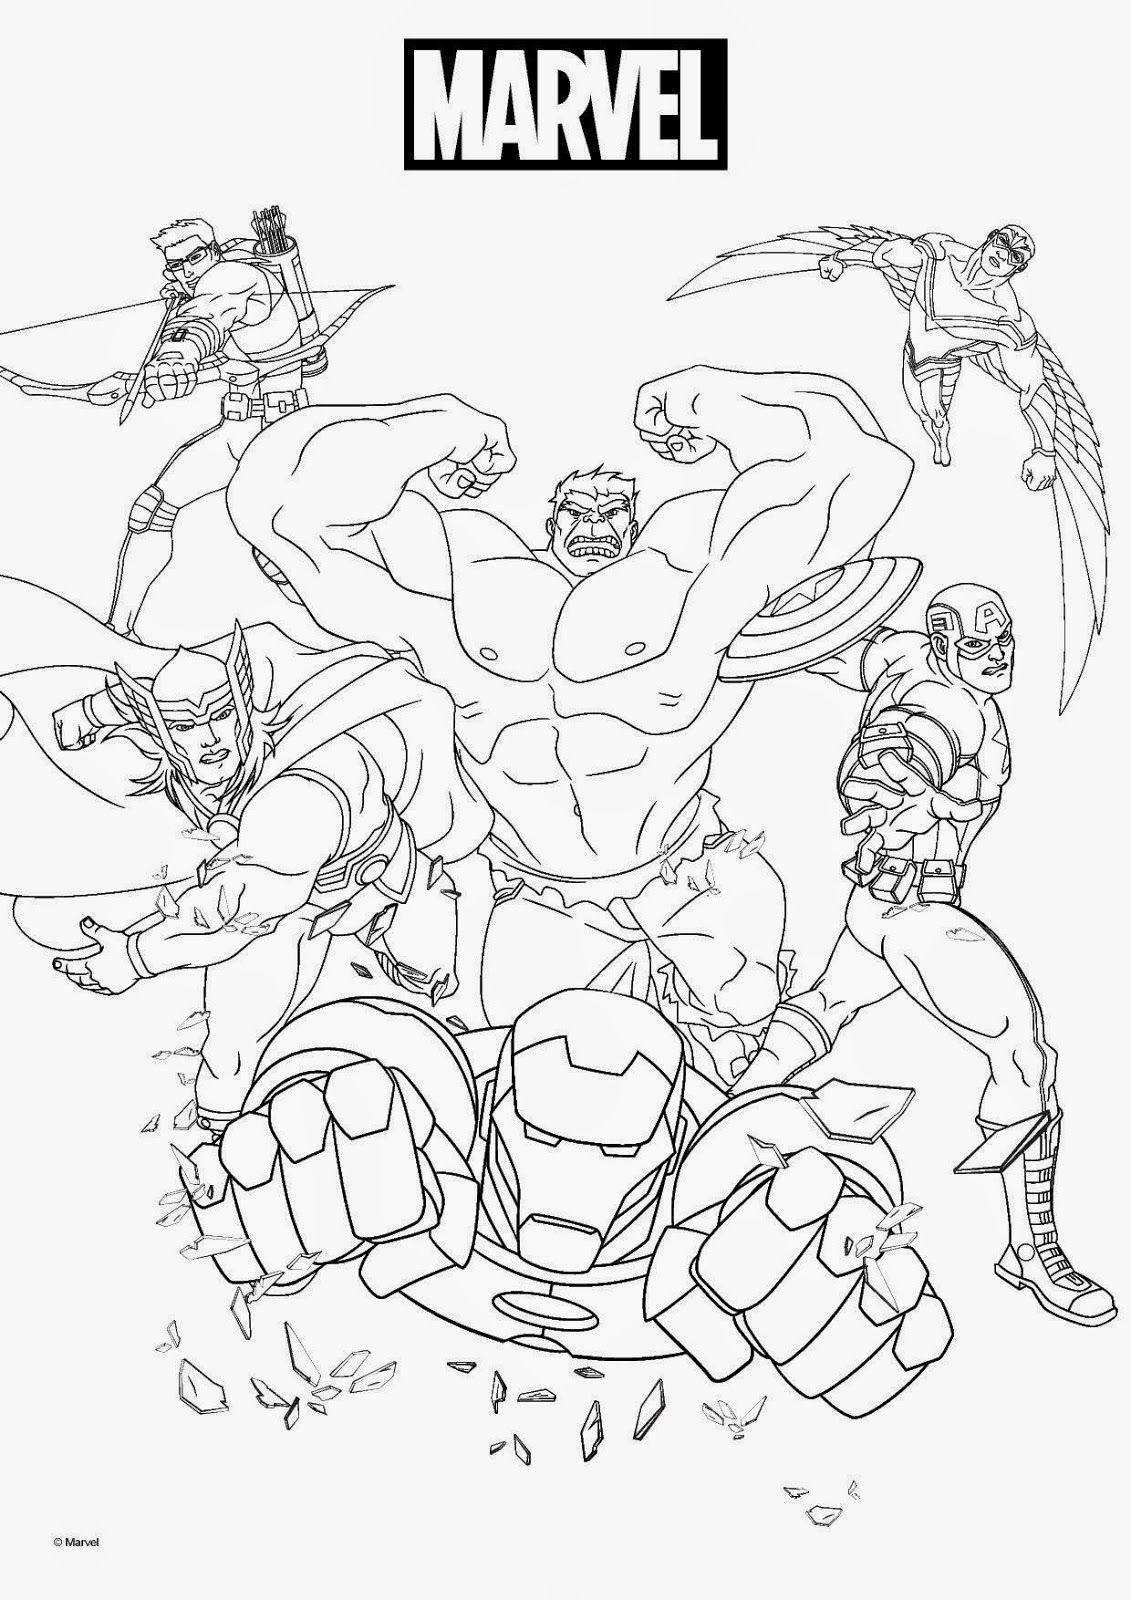 Marvel Coloring Pages | Superheroes | Marvel Coloring